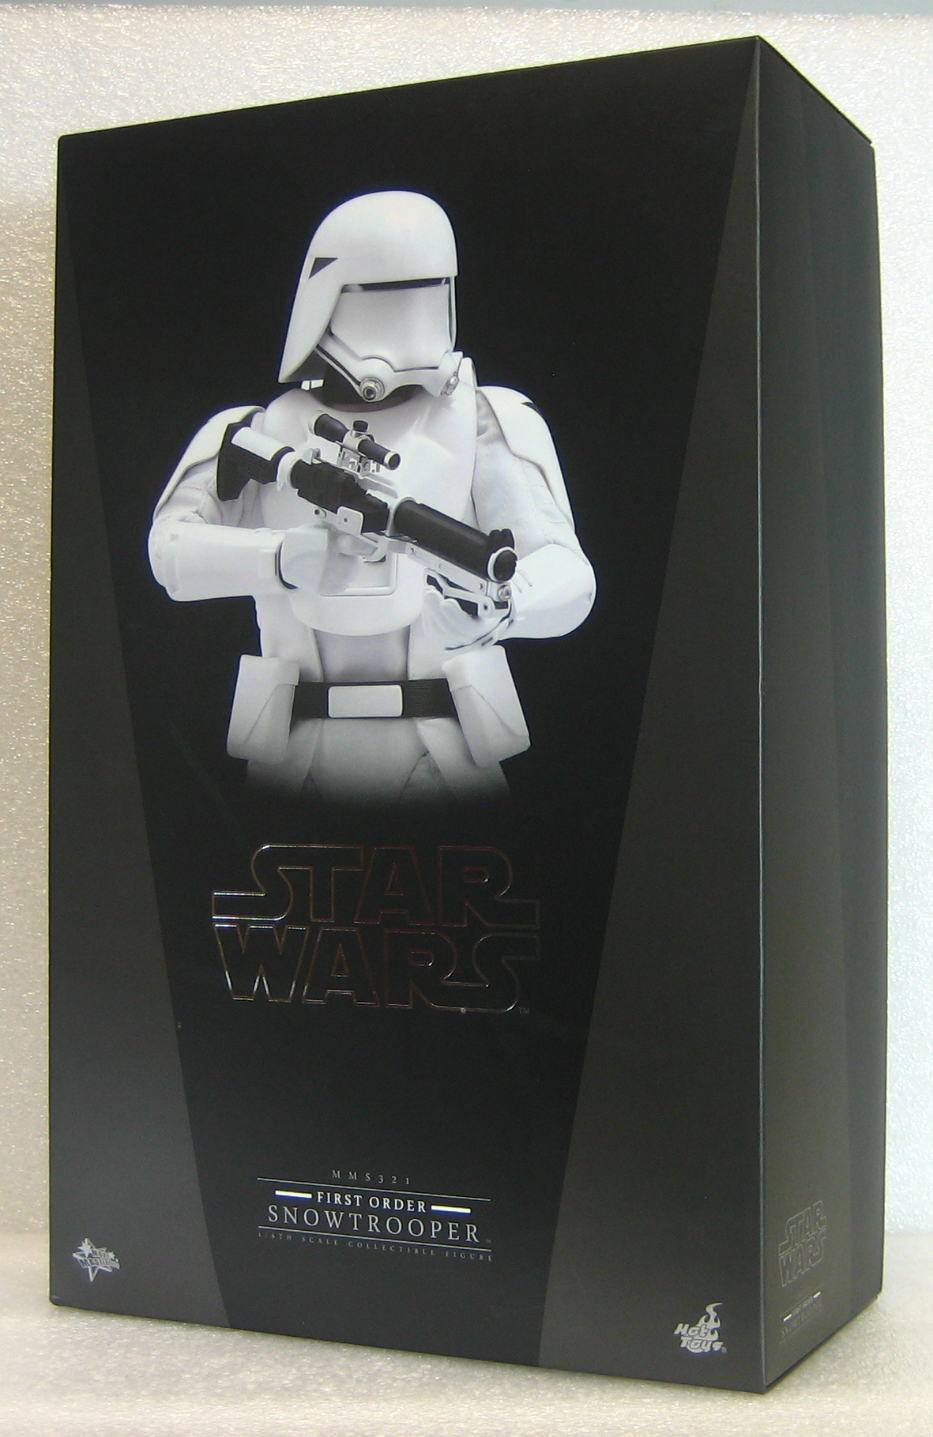 Hot Toys Star Wars First Order Snowtrooper 1:6 Scale Figure